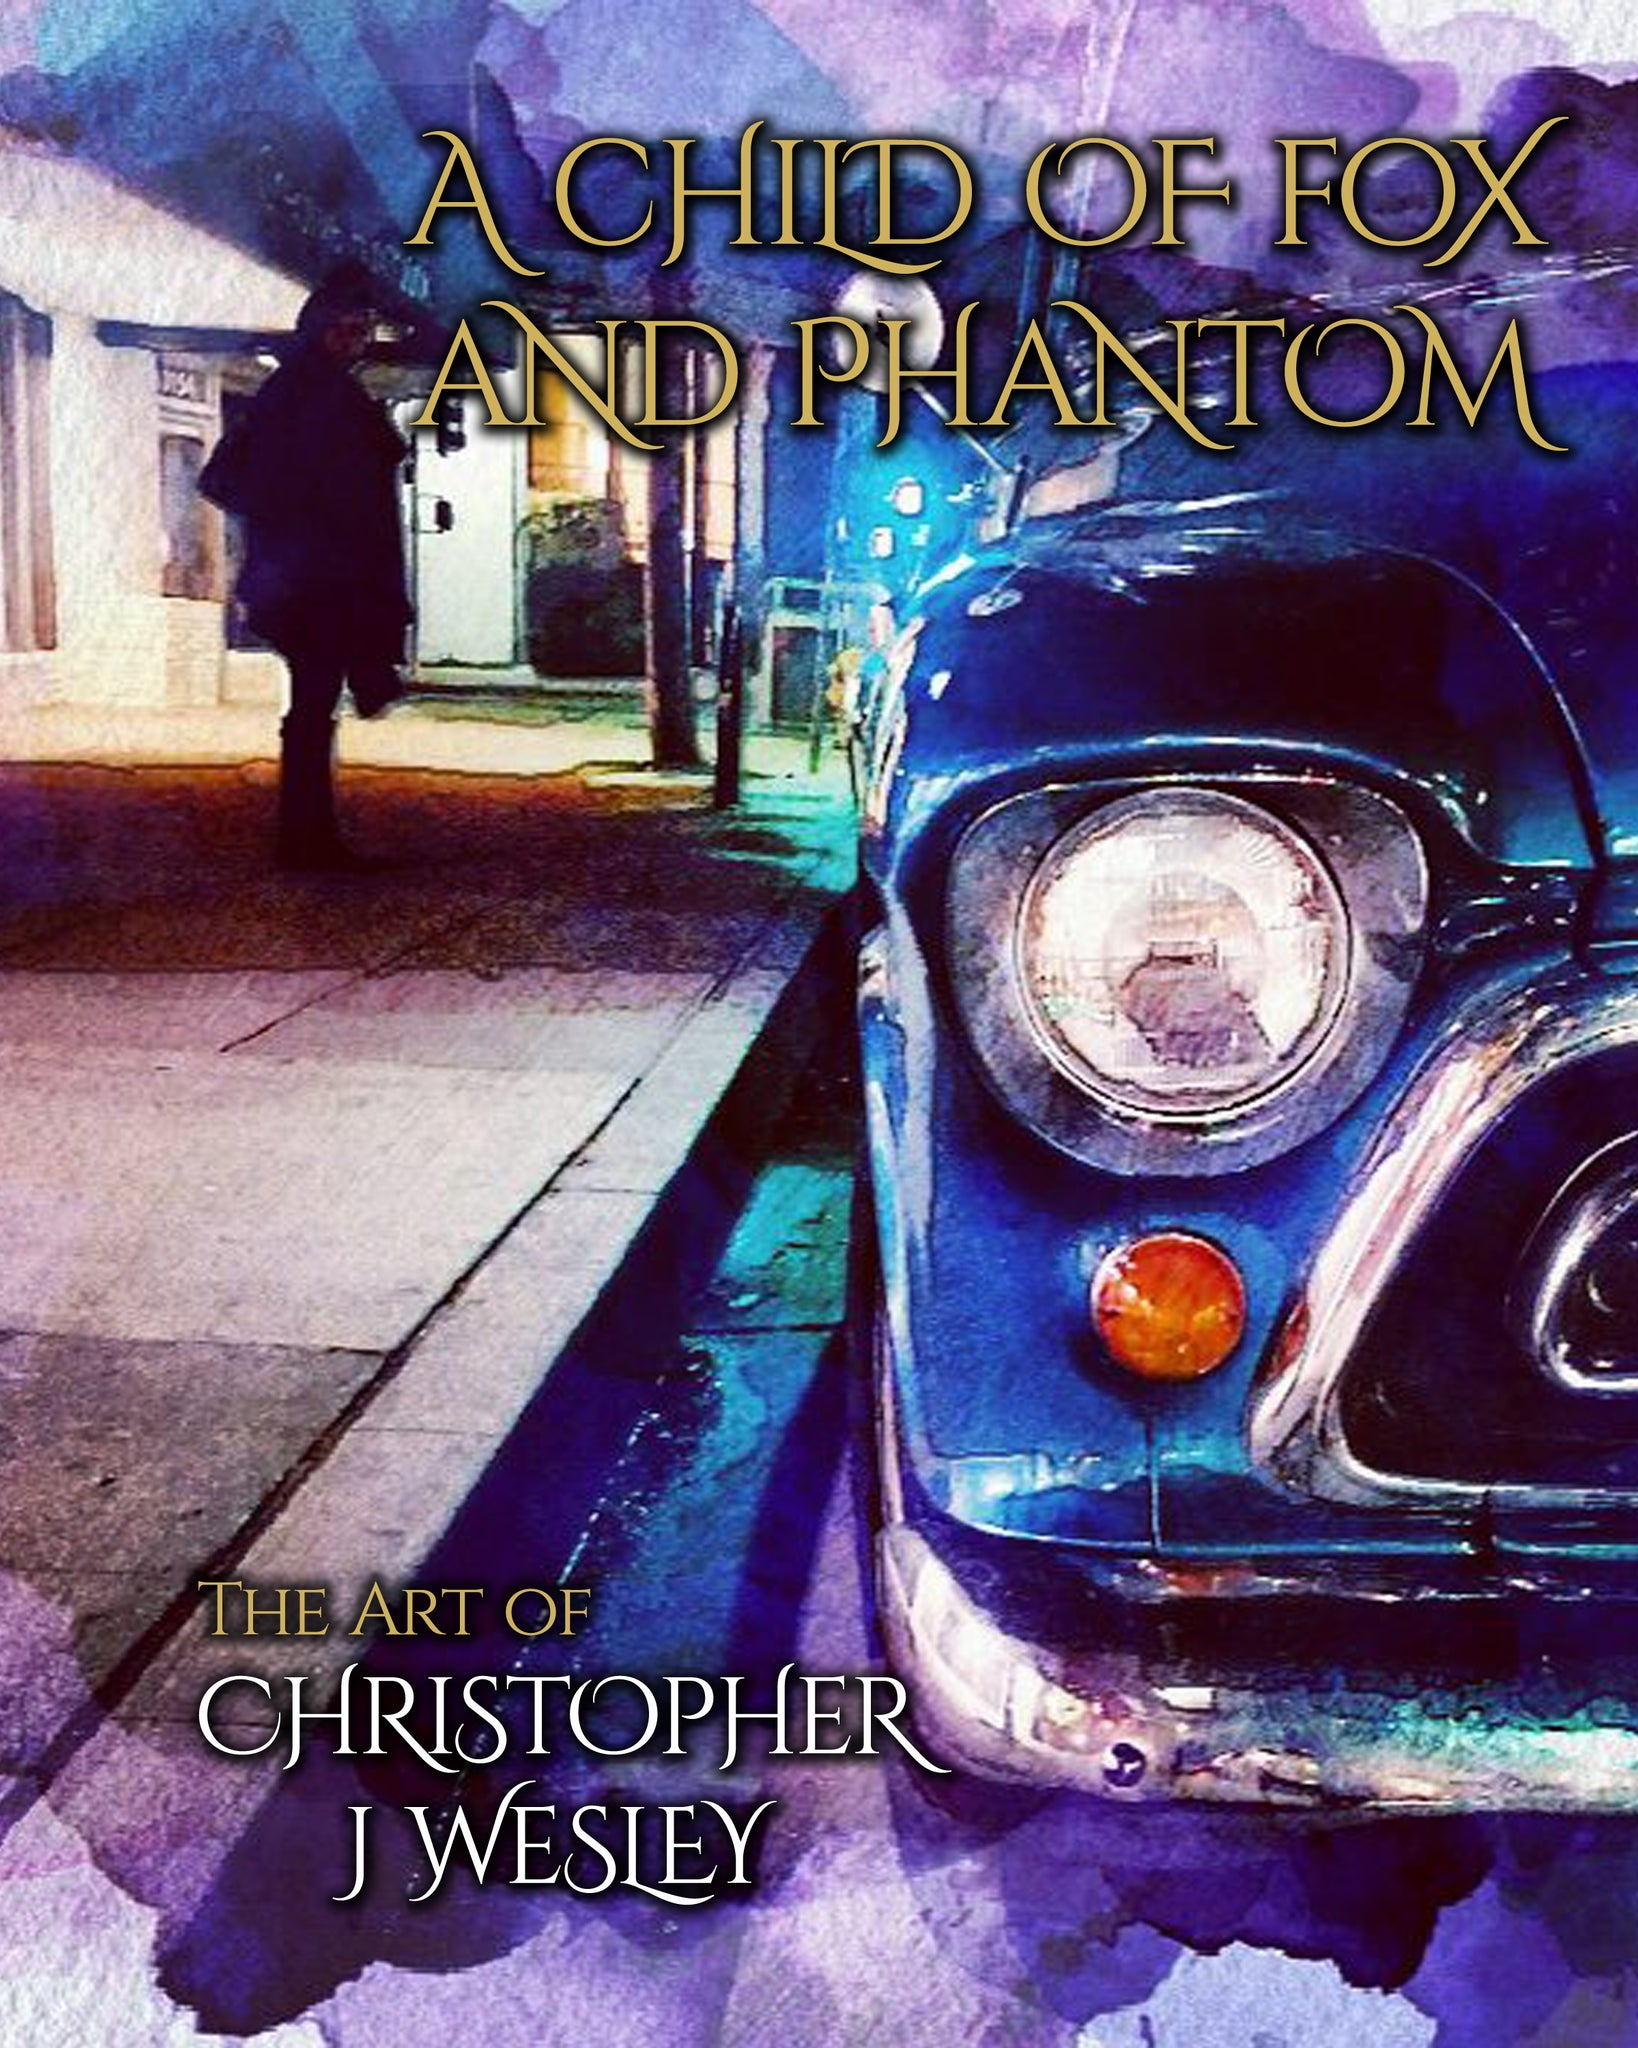 A Child of Fox and Phantom (The Art of Christopher J Wesley) Limited Edition Softcover Release